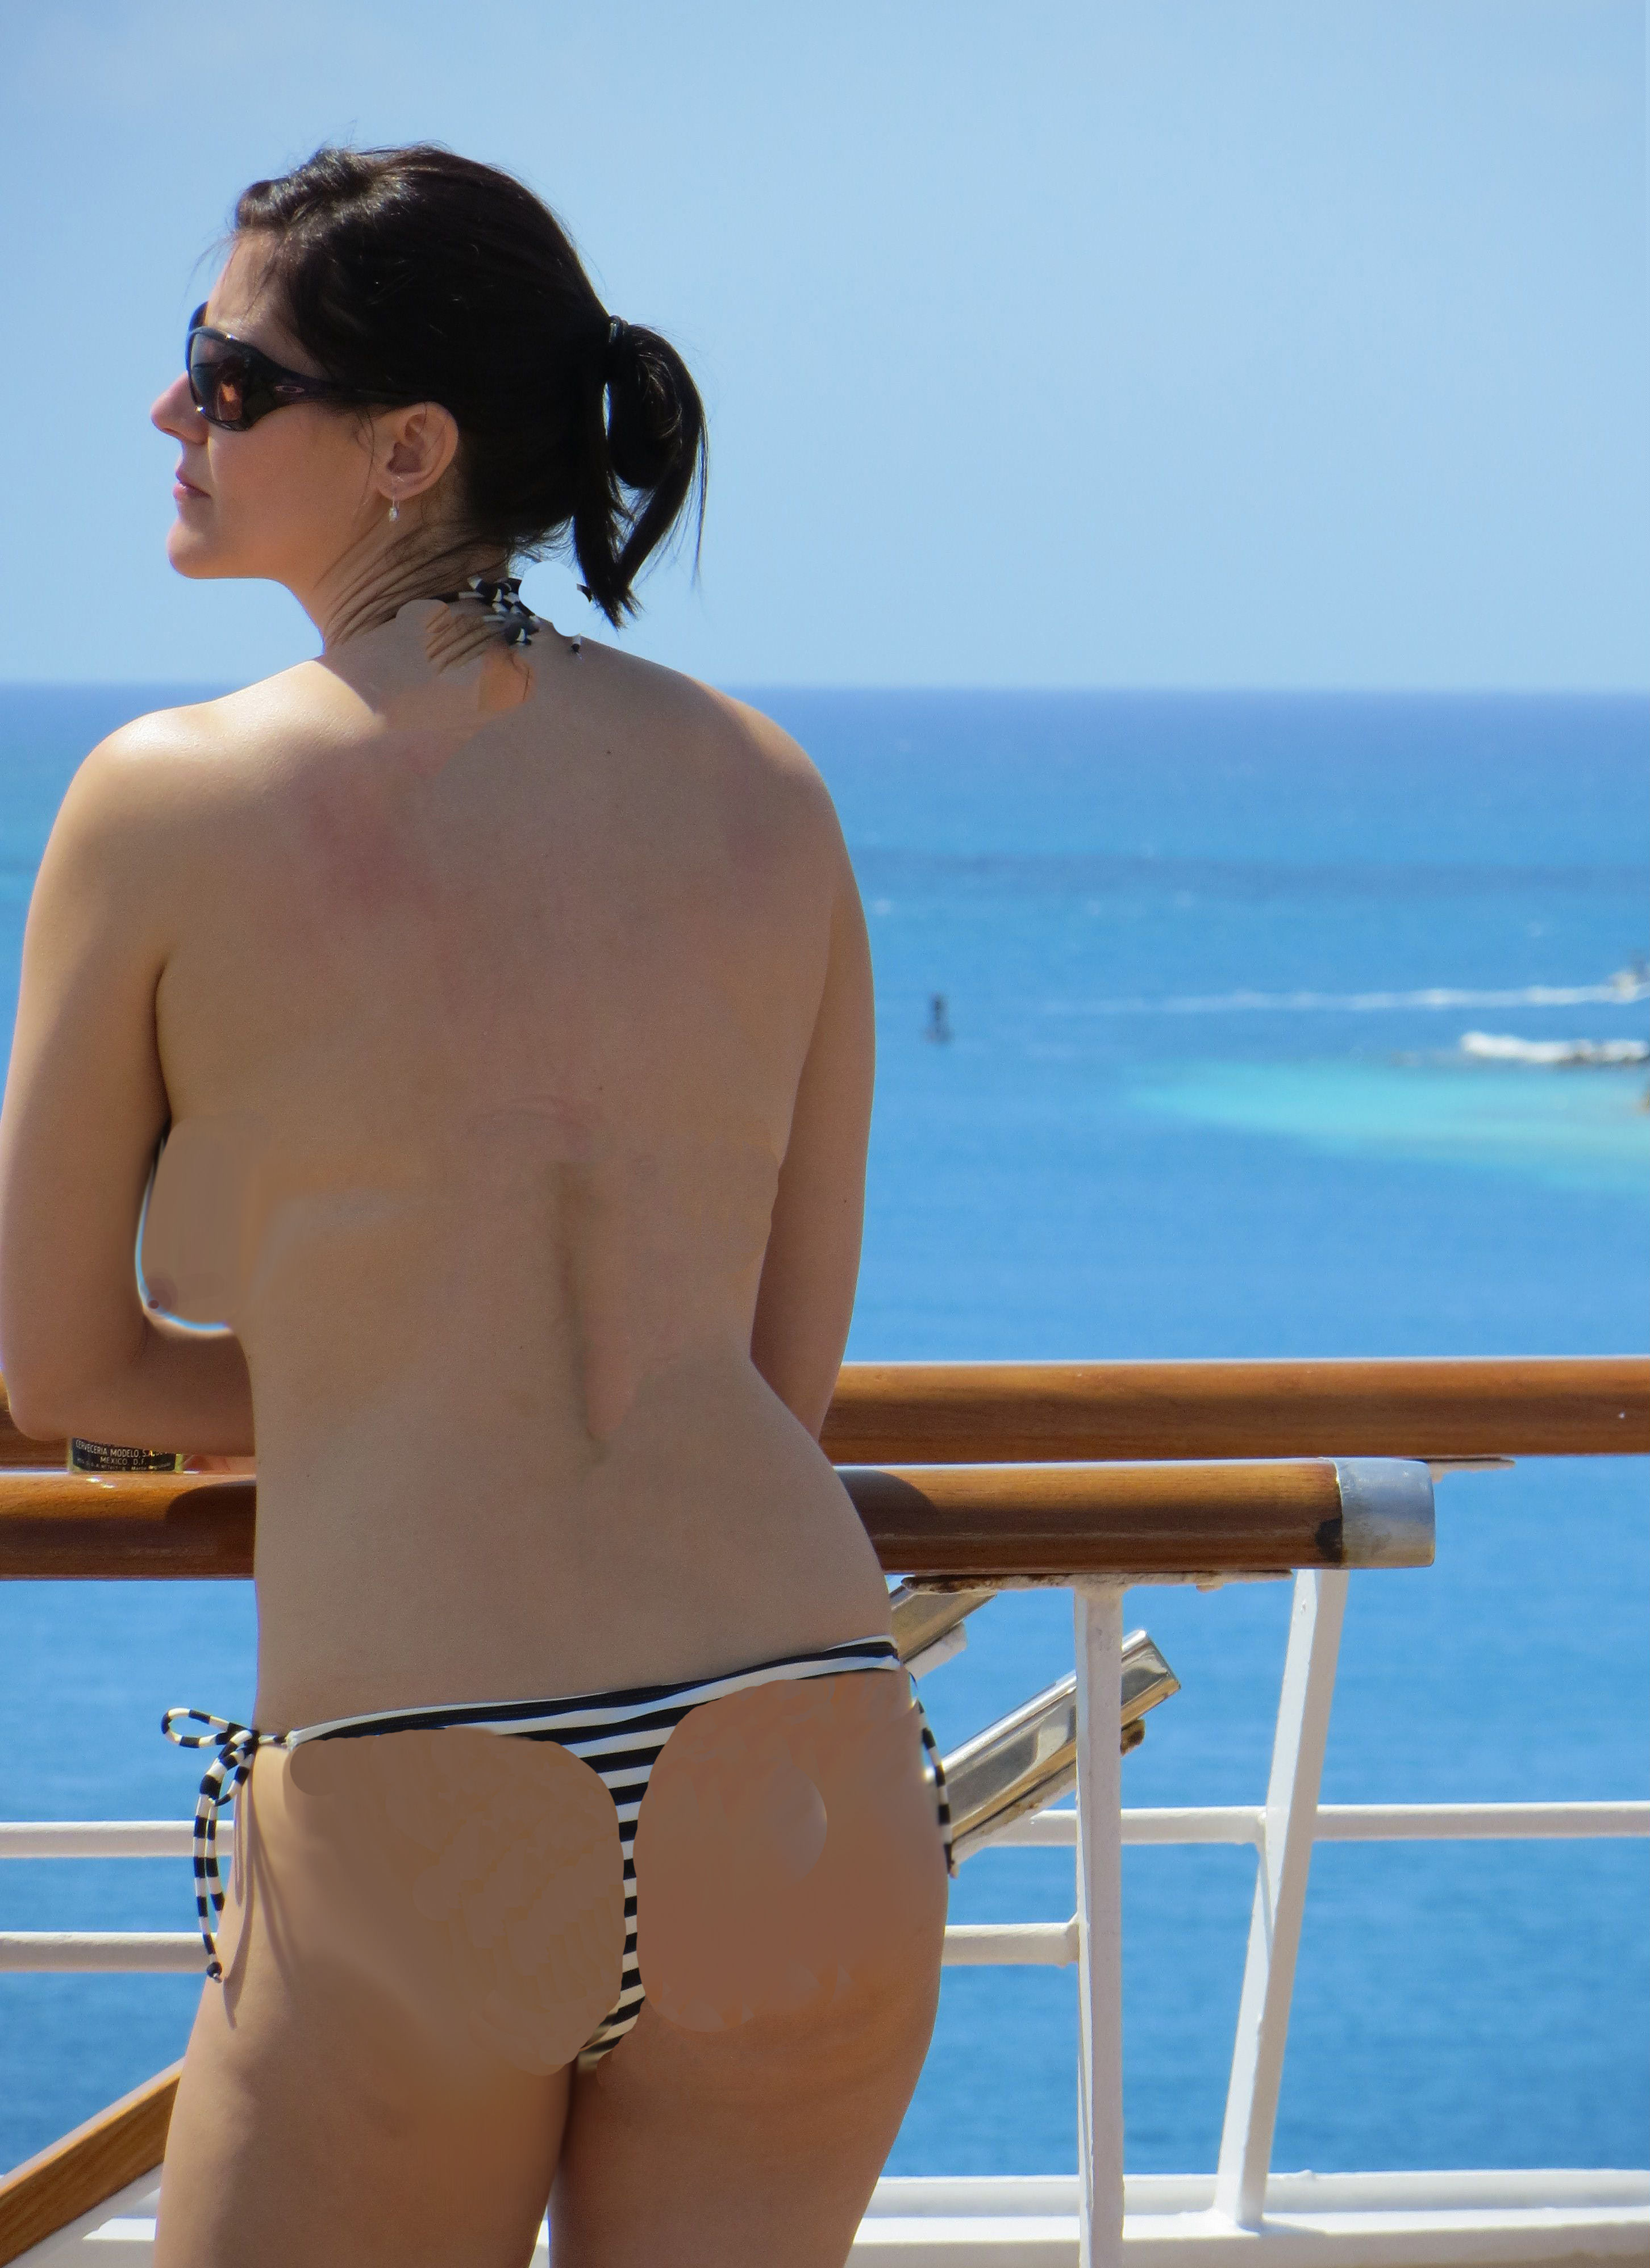 swingers nude cruise video